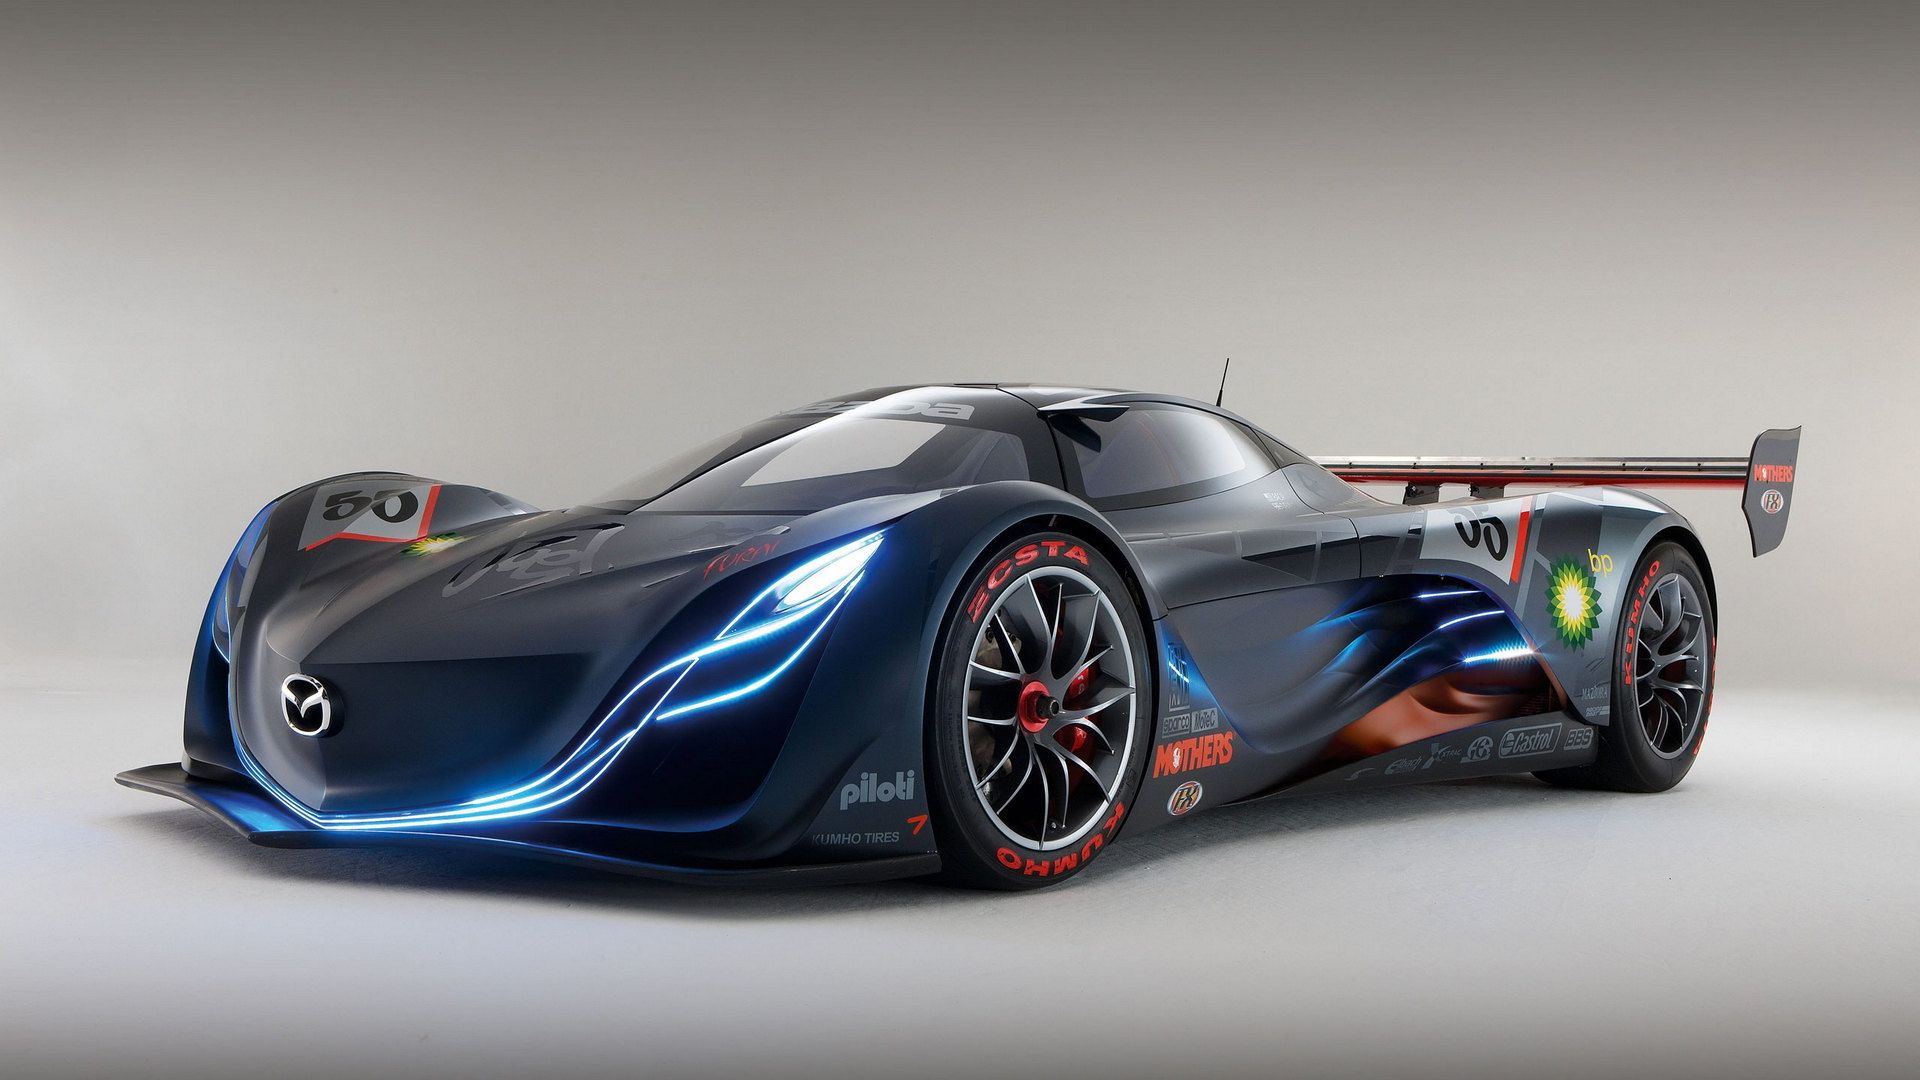 Cool Cars Of The Future Marcinak Pinterest Cars Of The